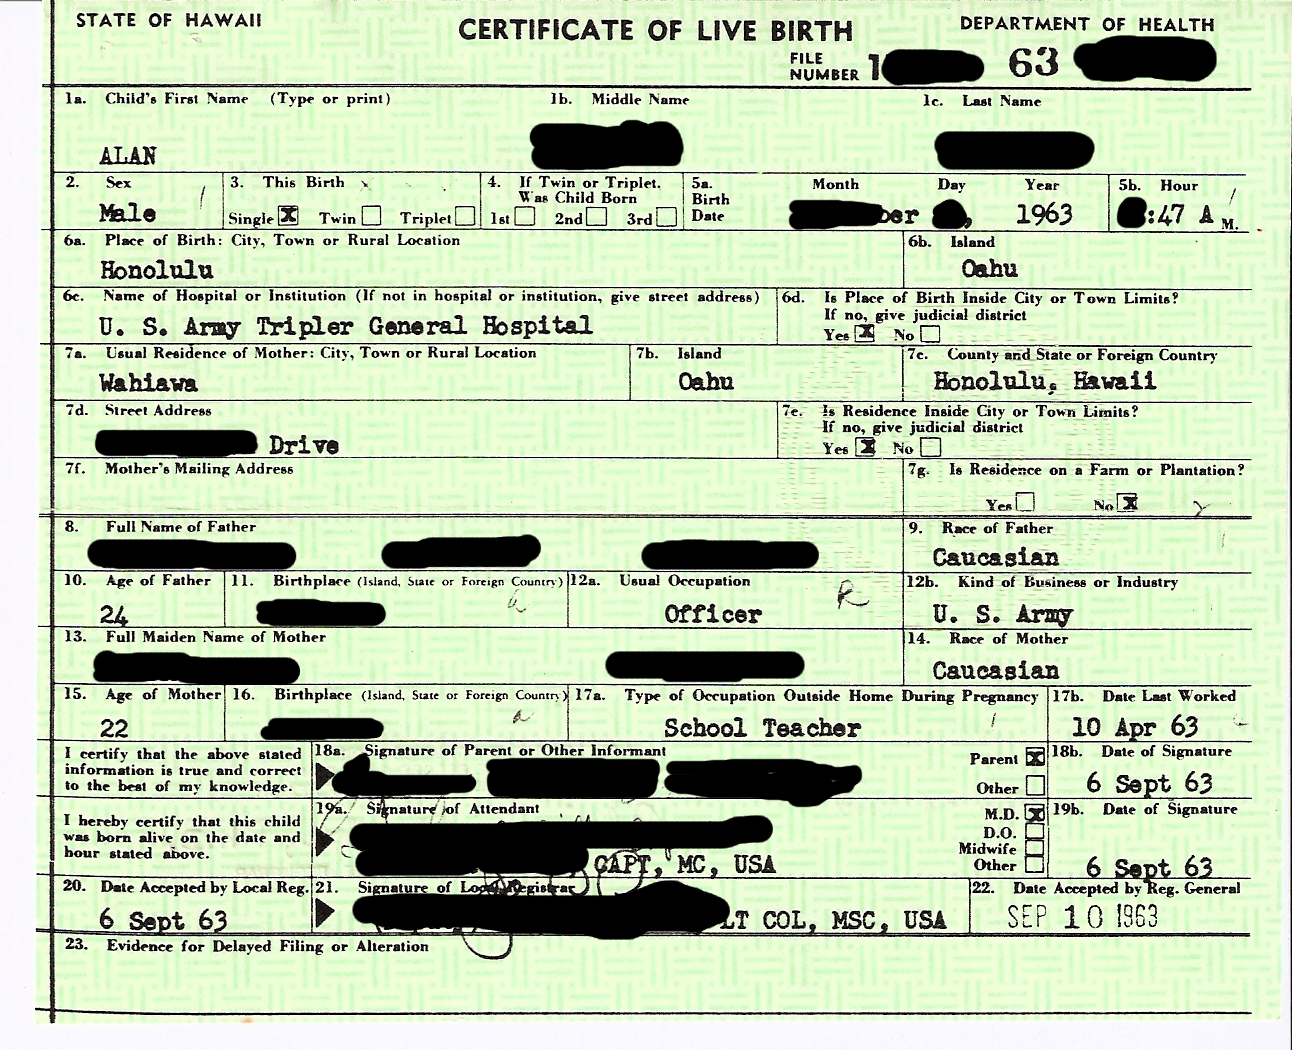 Birth certificate obama conspiracy theories 1963 alan birth certificate image from hawaii xflitez Gallery